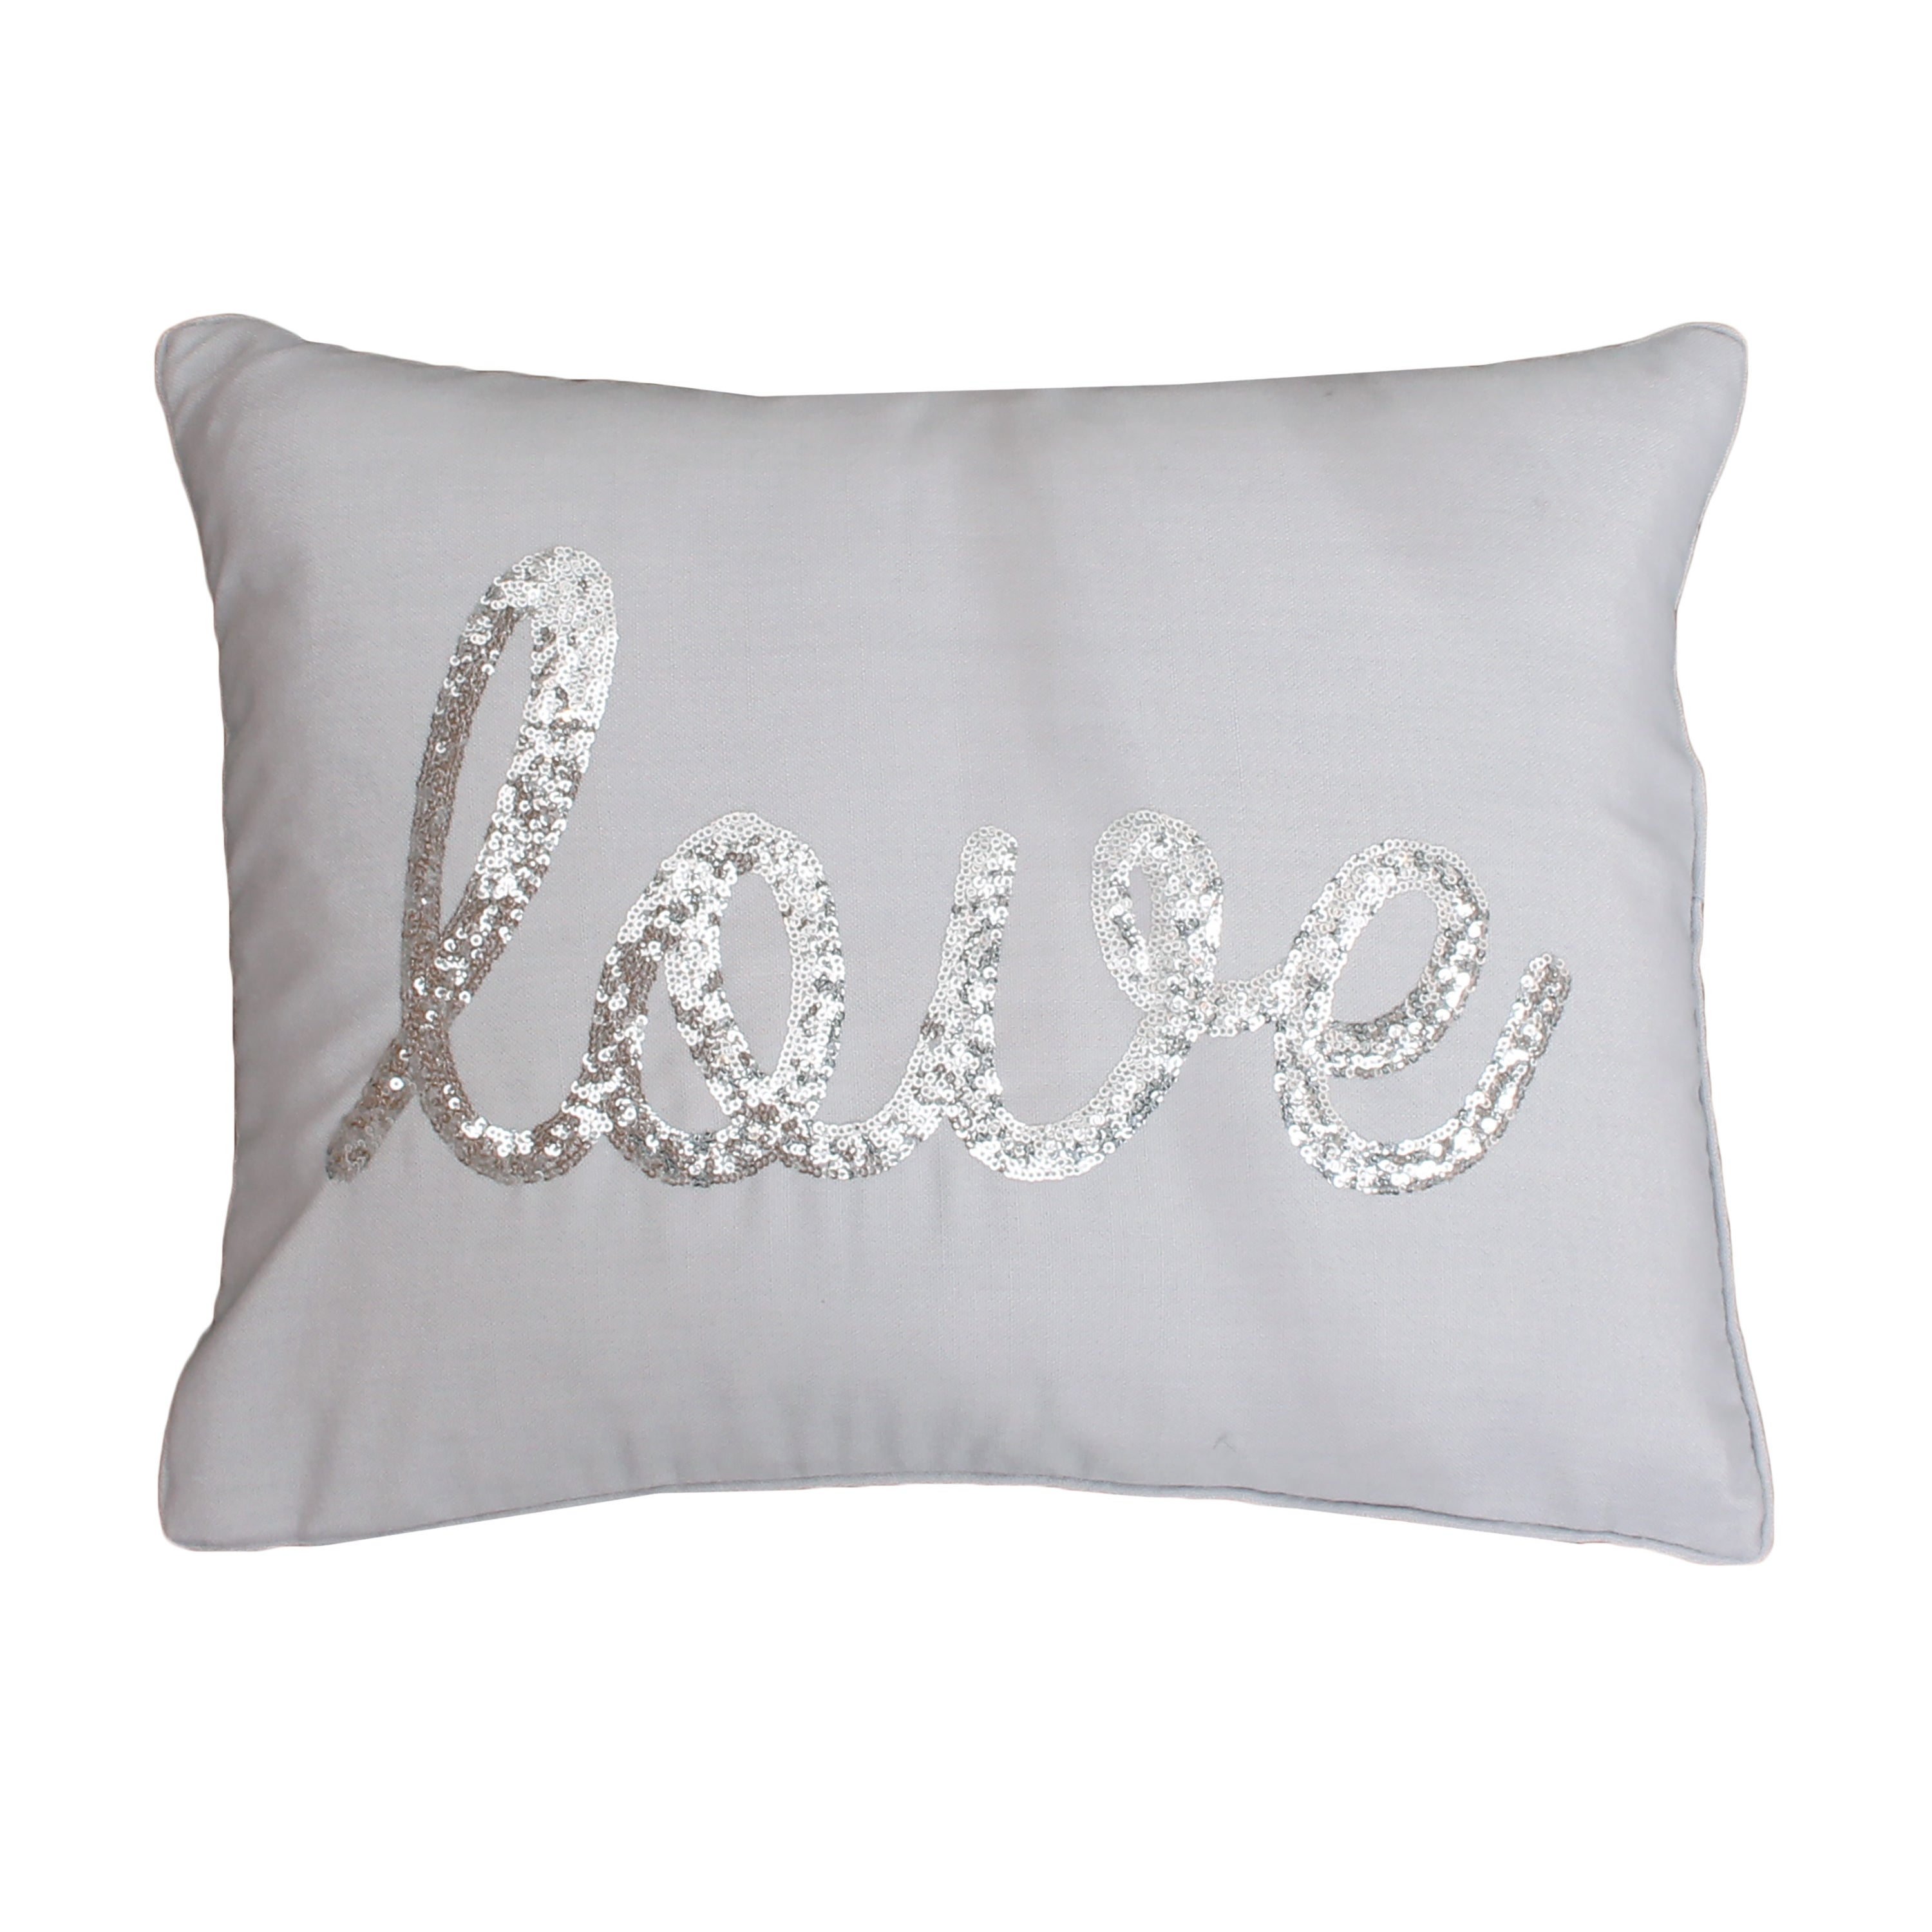 Thro by Marlo Lorenz Love Sequined Feather filled Throw Pillow bd753608 e5e4 427f 95fc 78ce3a4c3d10 - Do You Know How Many People Show Up At Marlo Lorenz Pillow